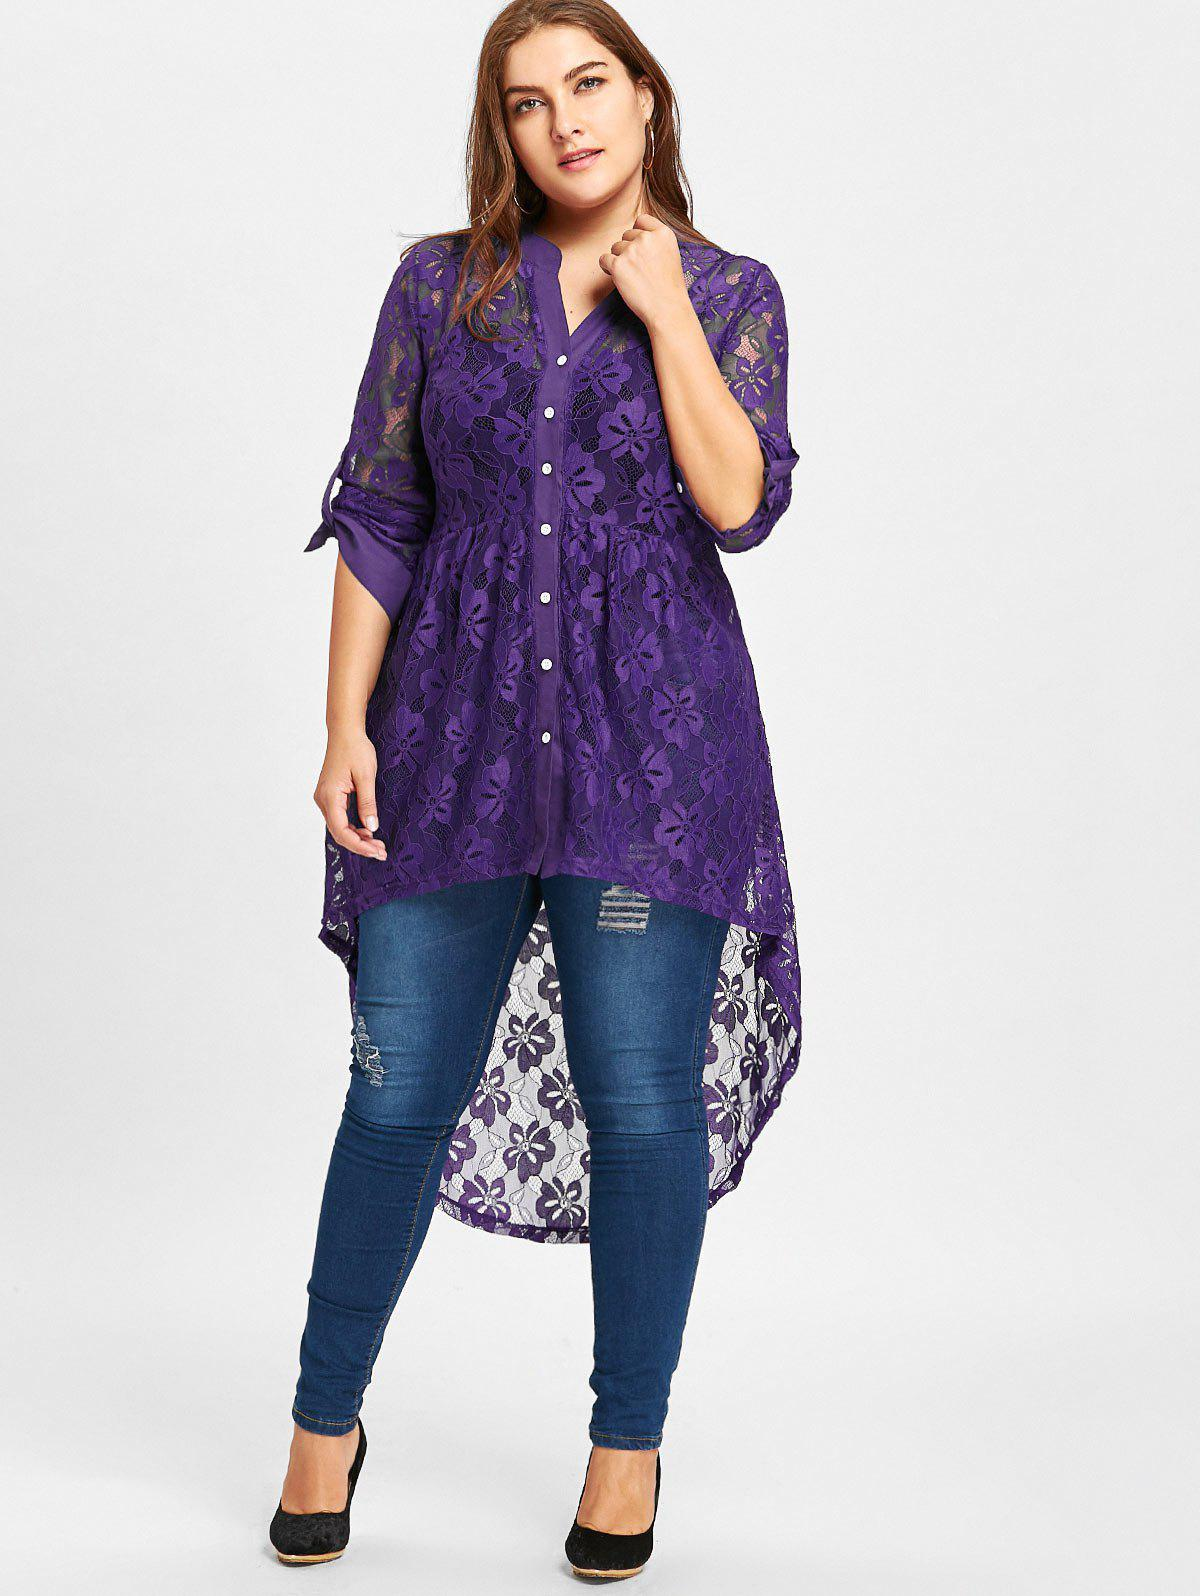 New High Low Lace Long Sleeve Plus Size Top